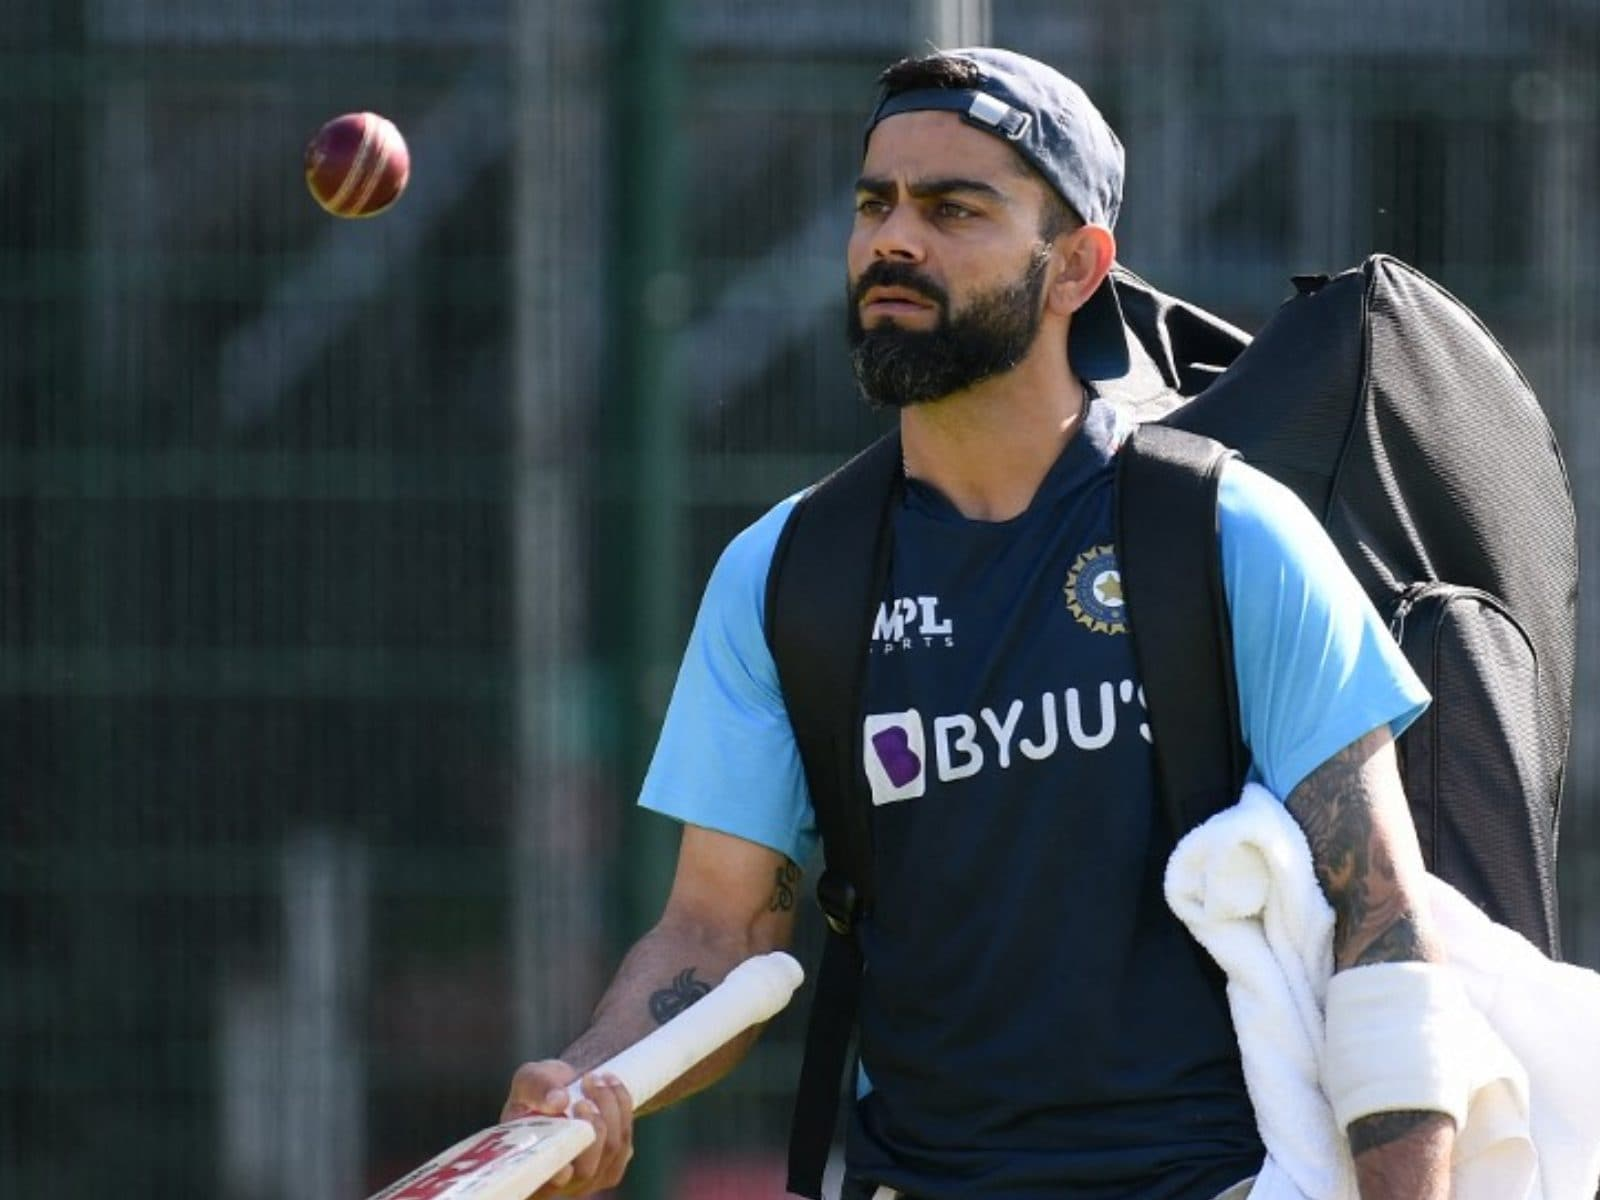 Virat Kohli Steps Down: WTC Loss, IPL Drought, Tiff With New Selection  Panel Played Key Role in Kohli's Decision-Report